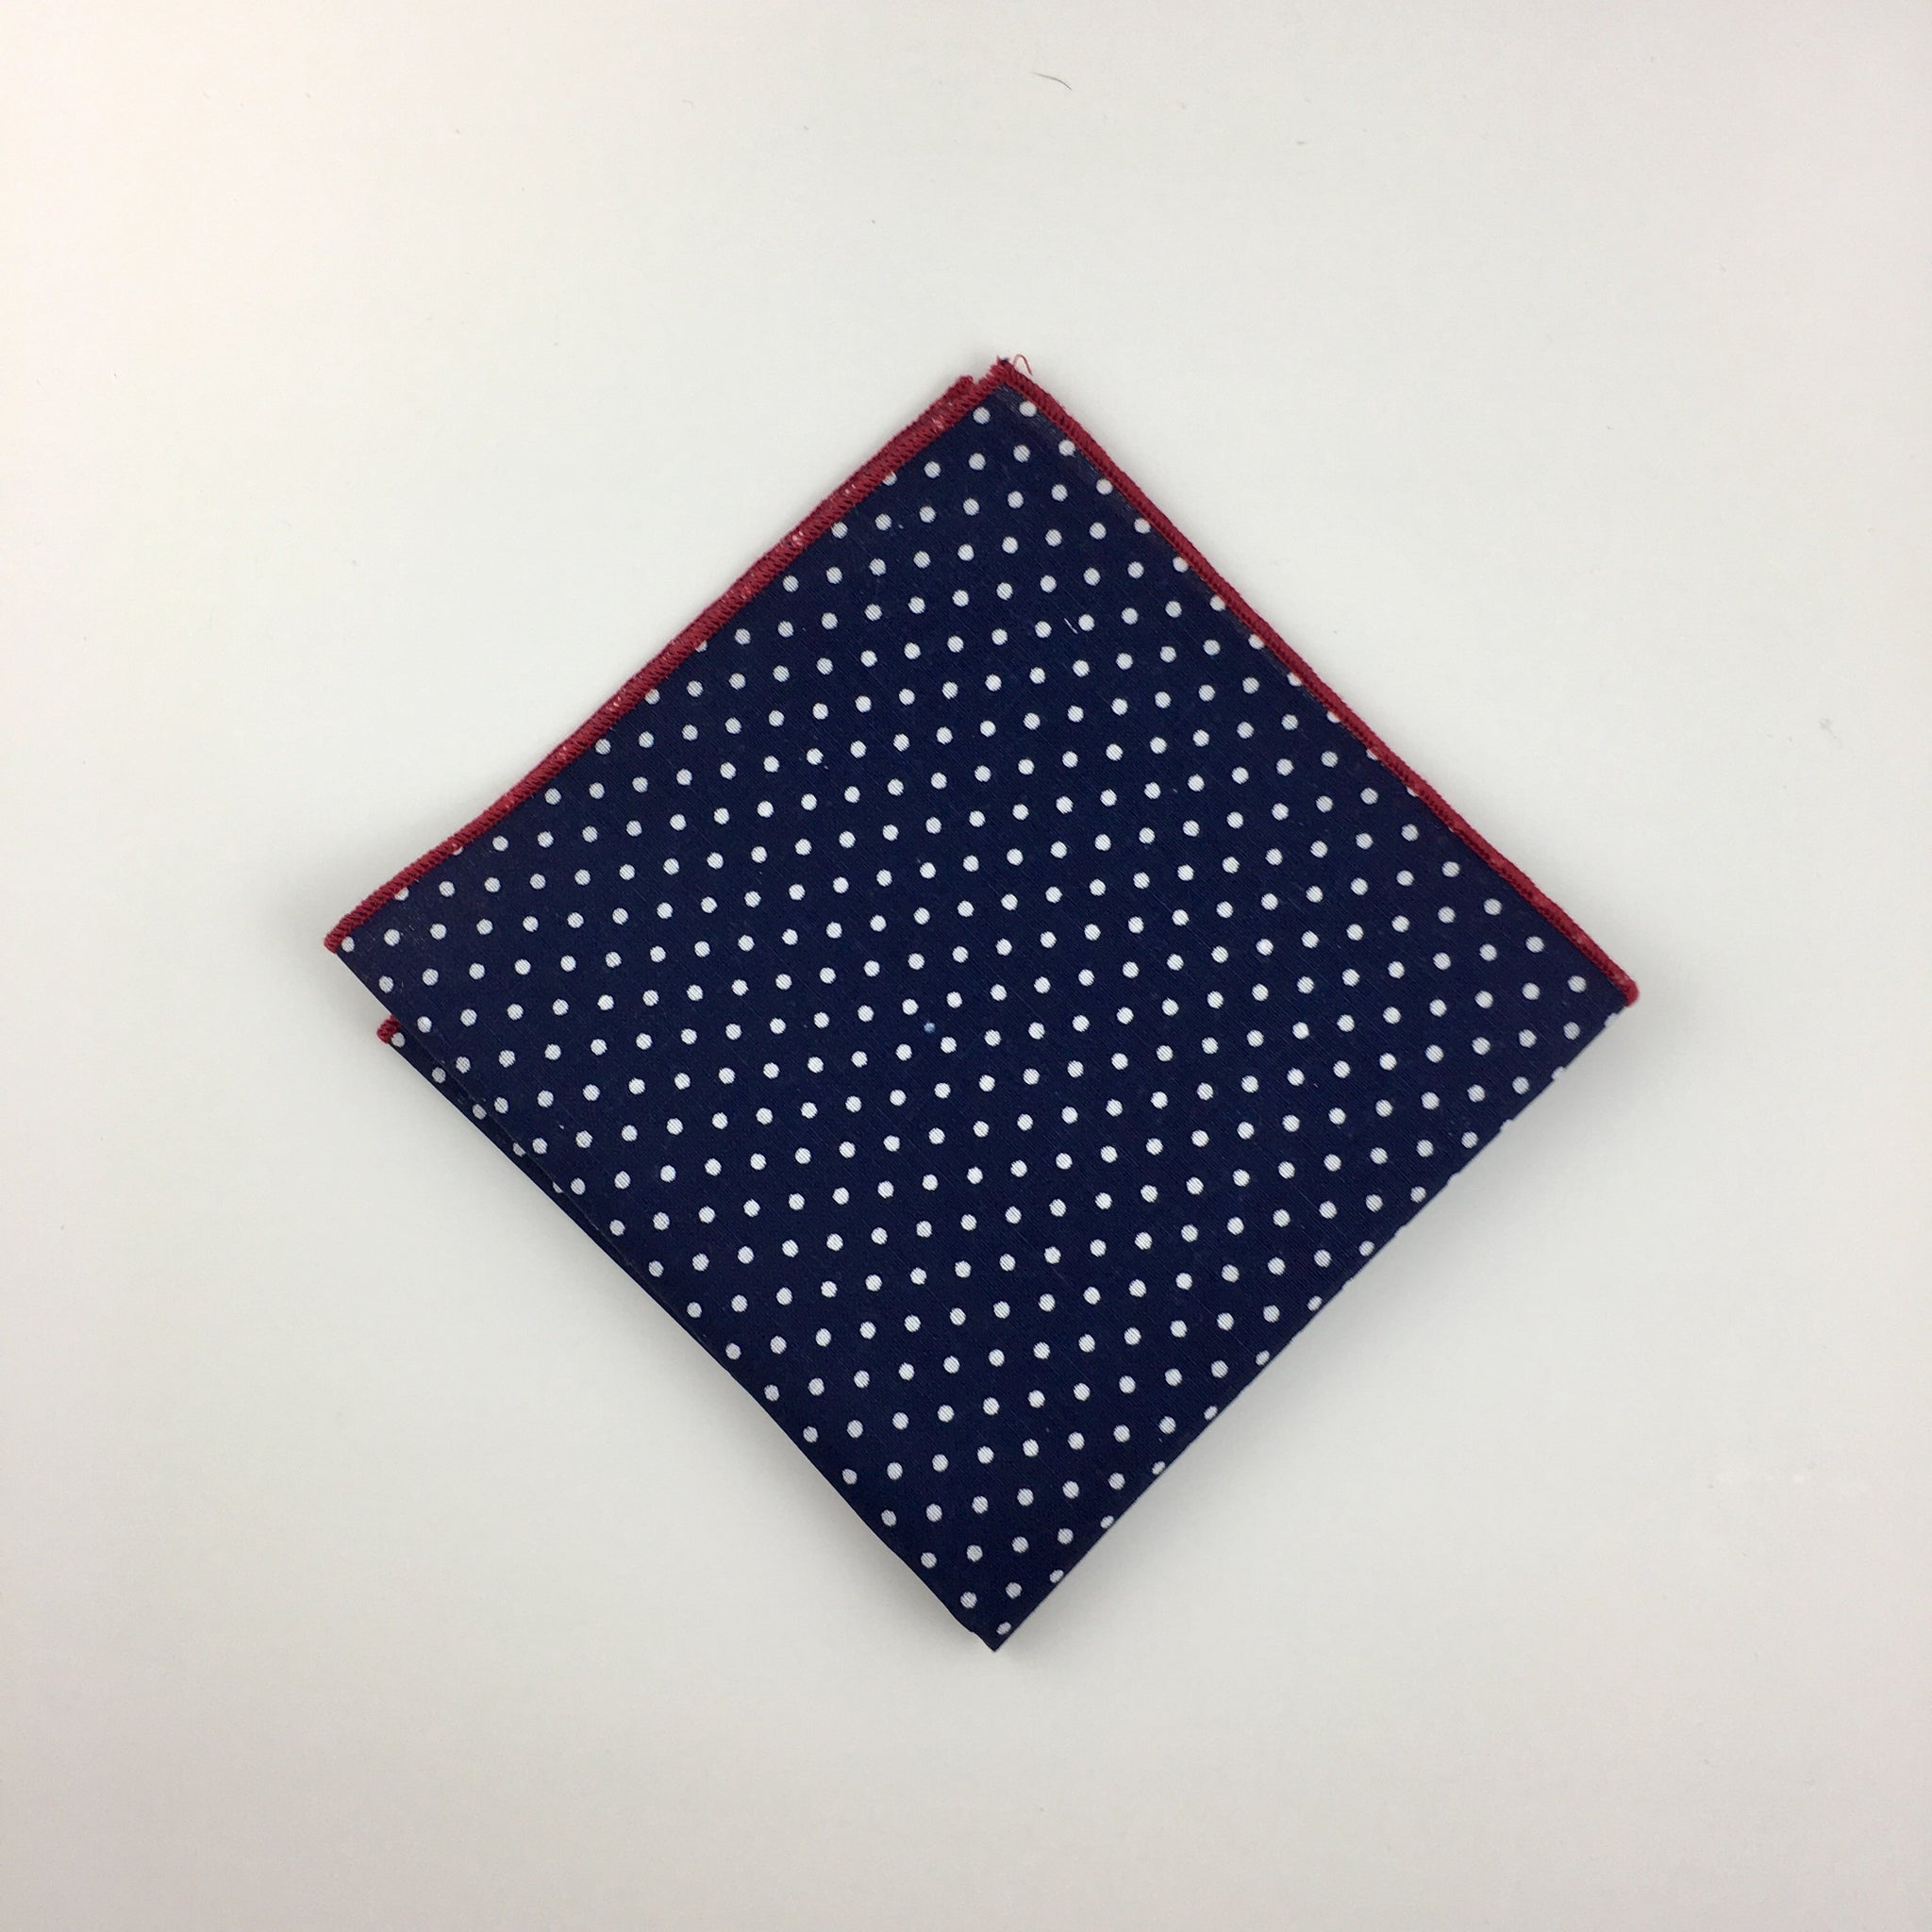 The-Dirty-Collar- Varadero Collection- Men's Pocket Squares- Men's Accessories